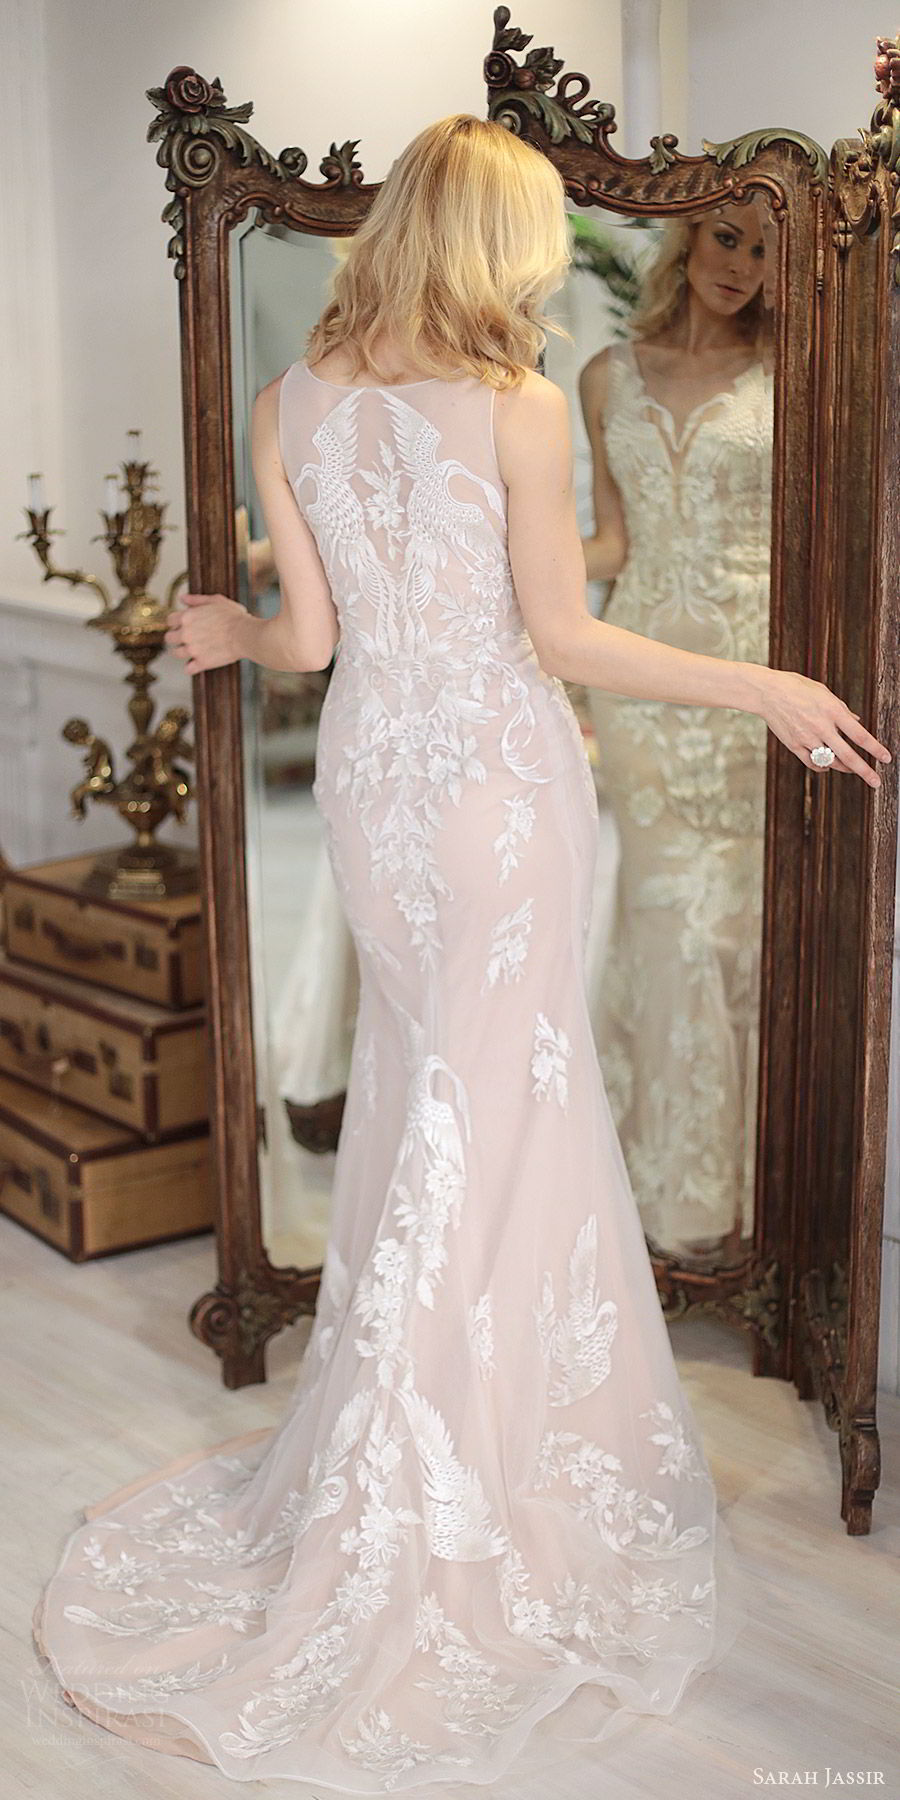 sarah jassir bridal 2018 sleeveless illusion straps sweetheart heavily embellished lace sheath wedding dress (swan) bv blush sweep train modern elegant